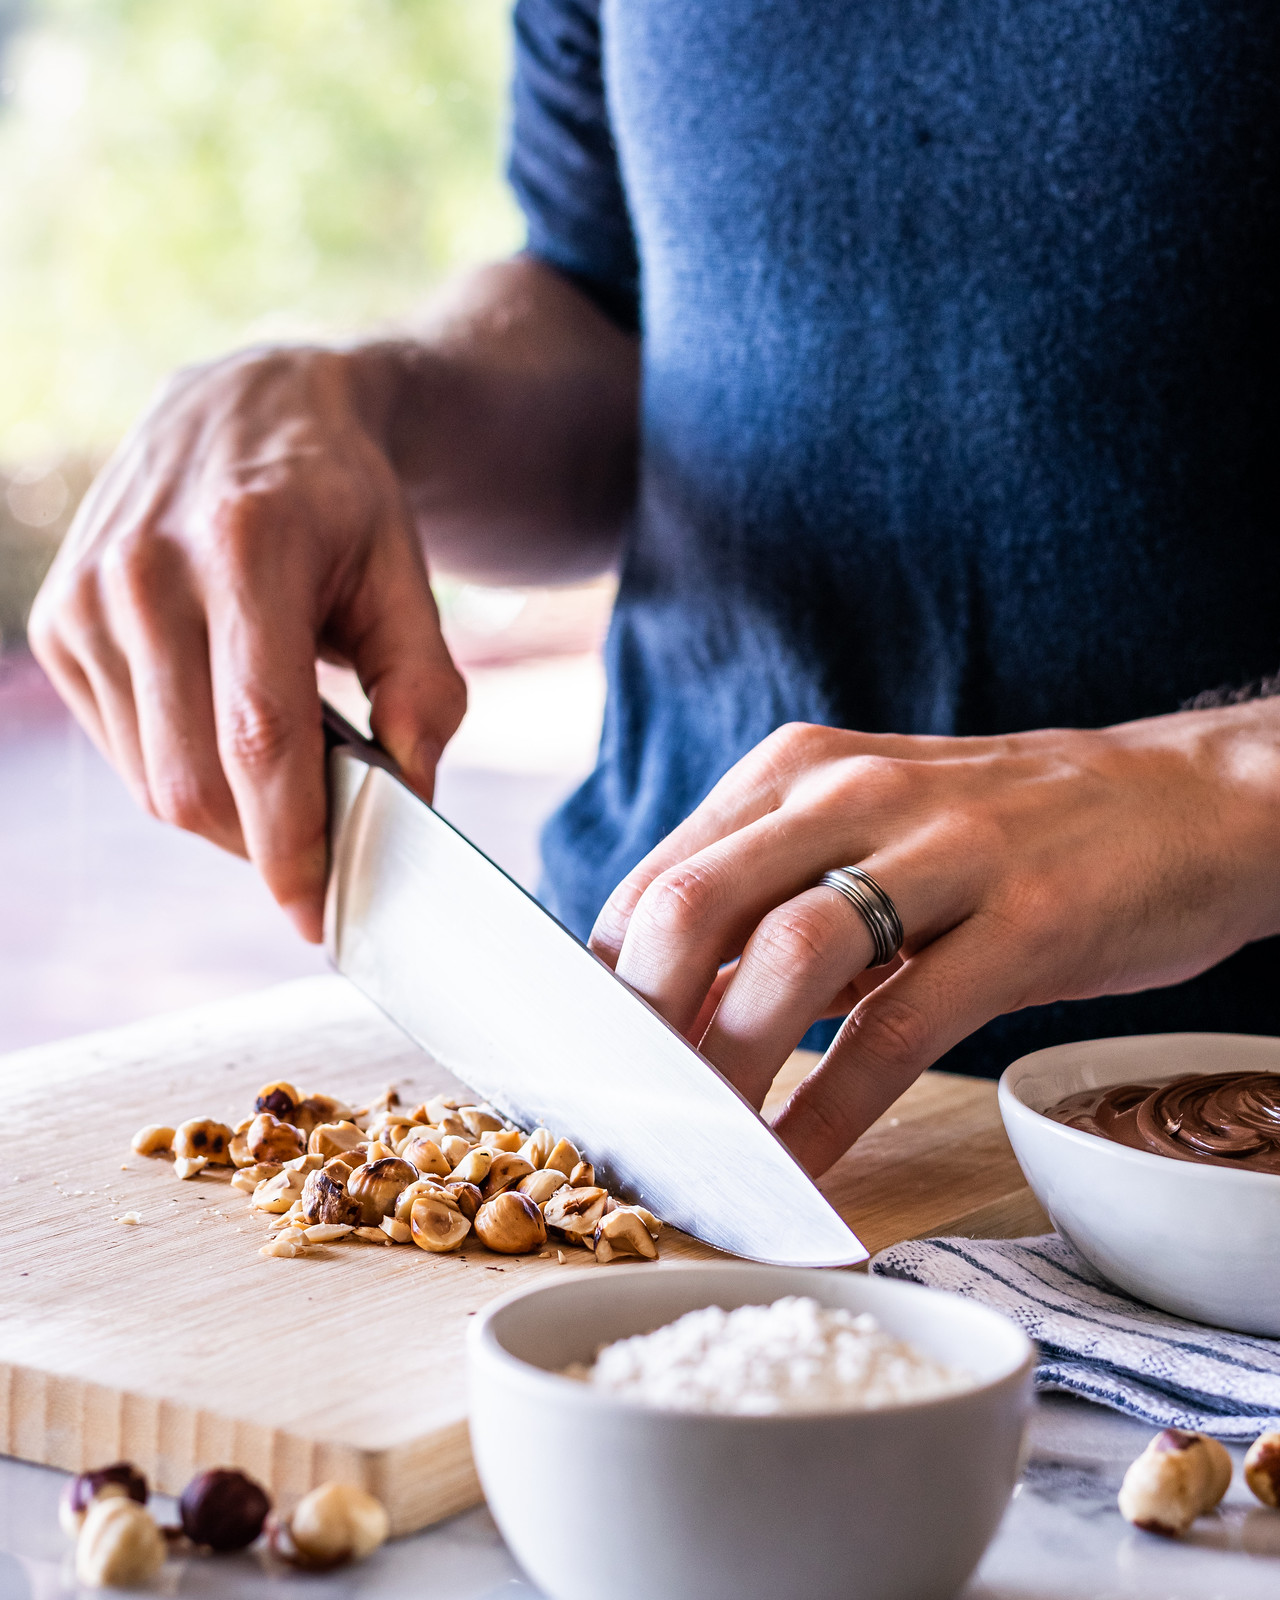 chopping the hazelnuts by hand